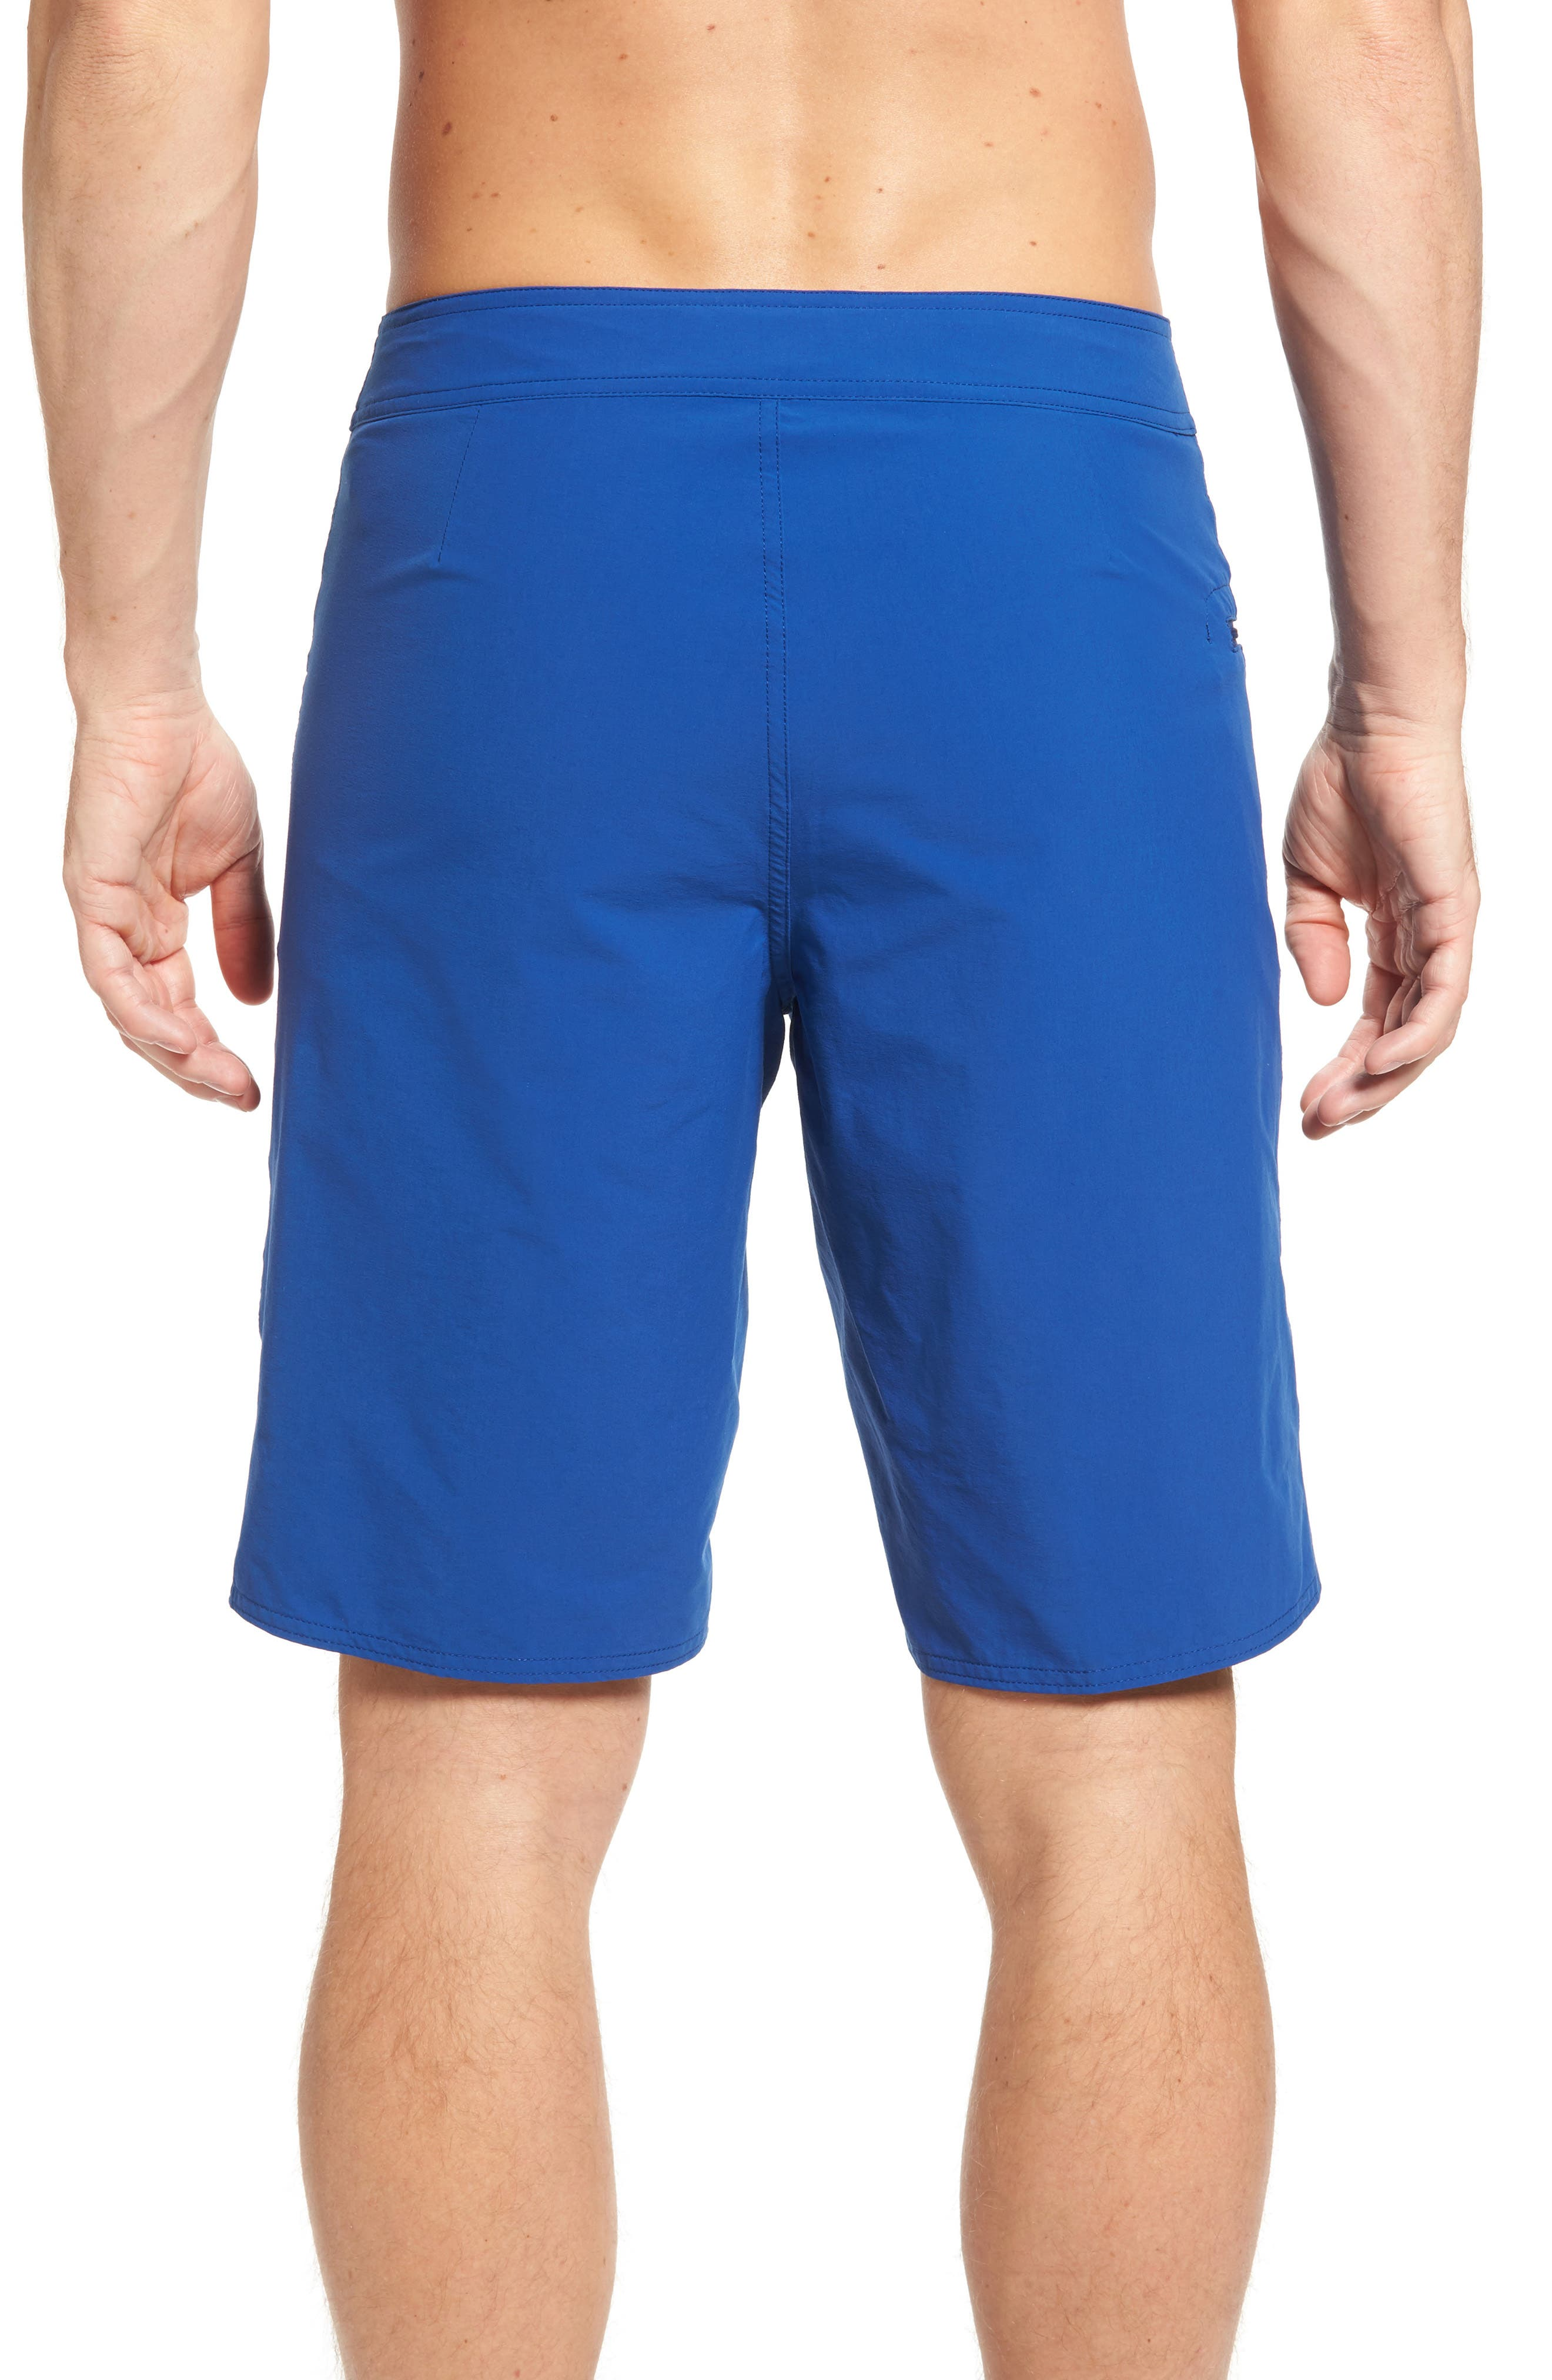 Wavefarer Board Shorts,                             Alternate thumbnail 2, color,                             BLUE